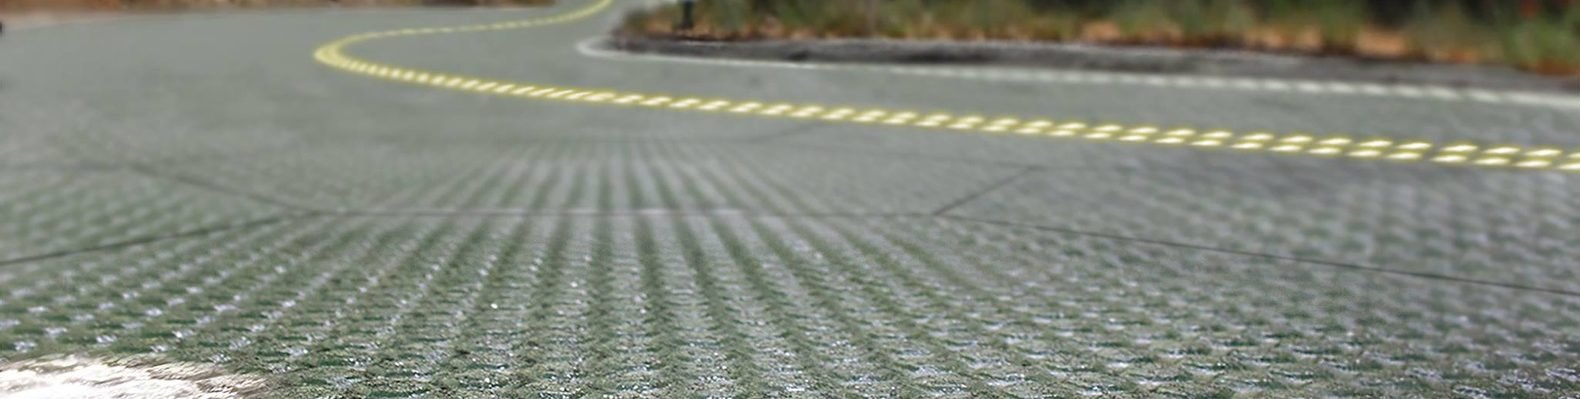 Solar Roadways, solar road, solar roads, road, solar panels, energy-generating